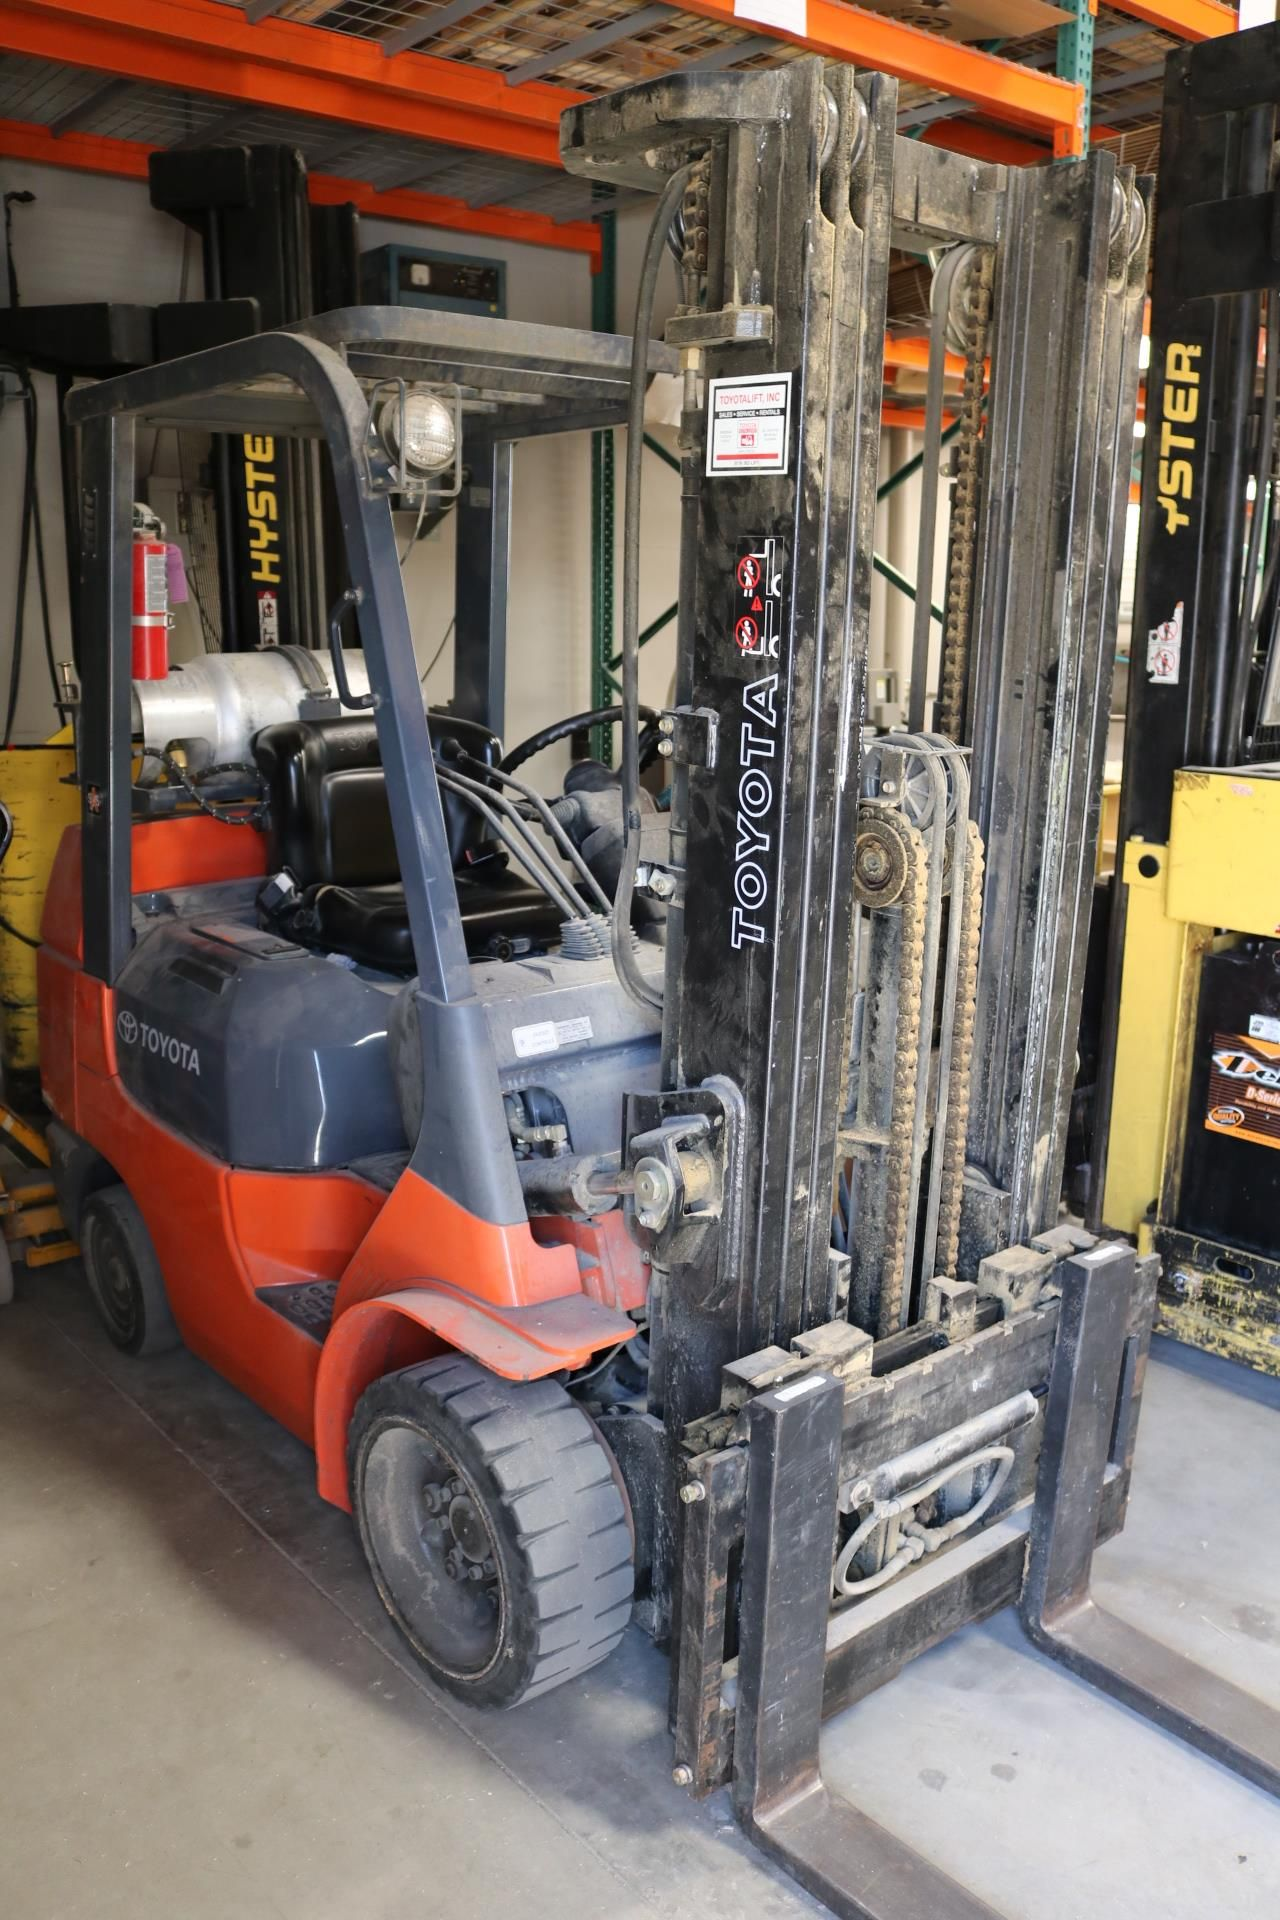 Lot 0 - PRO AUDIO SPEAKER MANUFACTURER, 2018 LAGUNA ROUTERS, SCHELLING PANEL SAW, TOYOTA & HYSTER FORKLIFTS